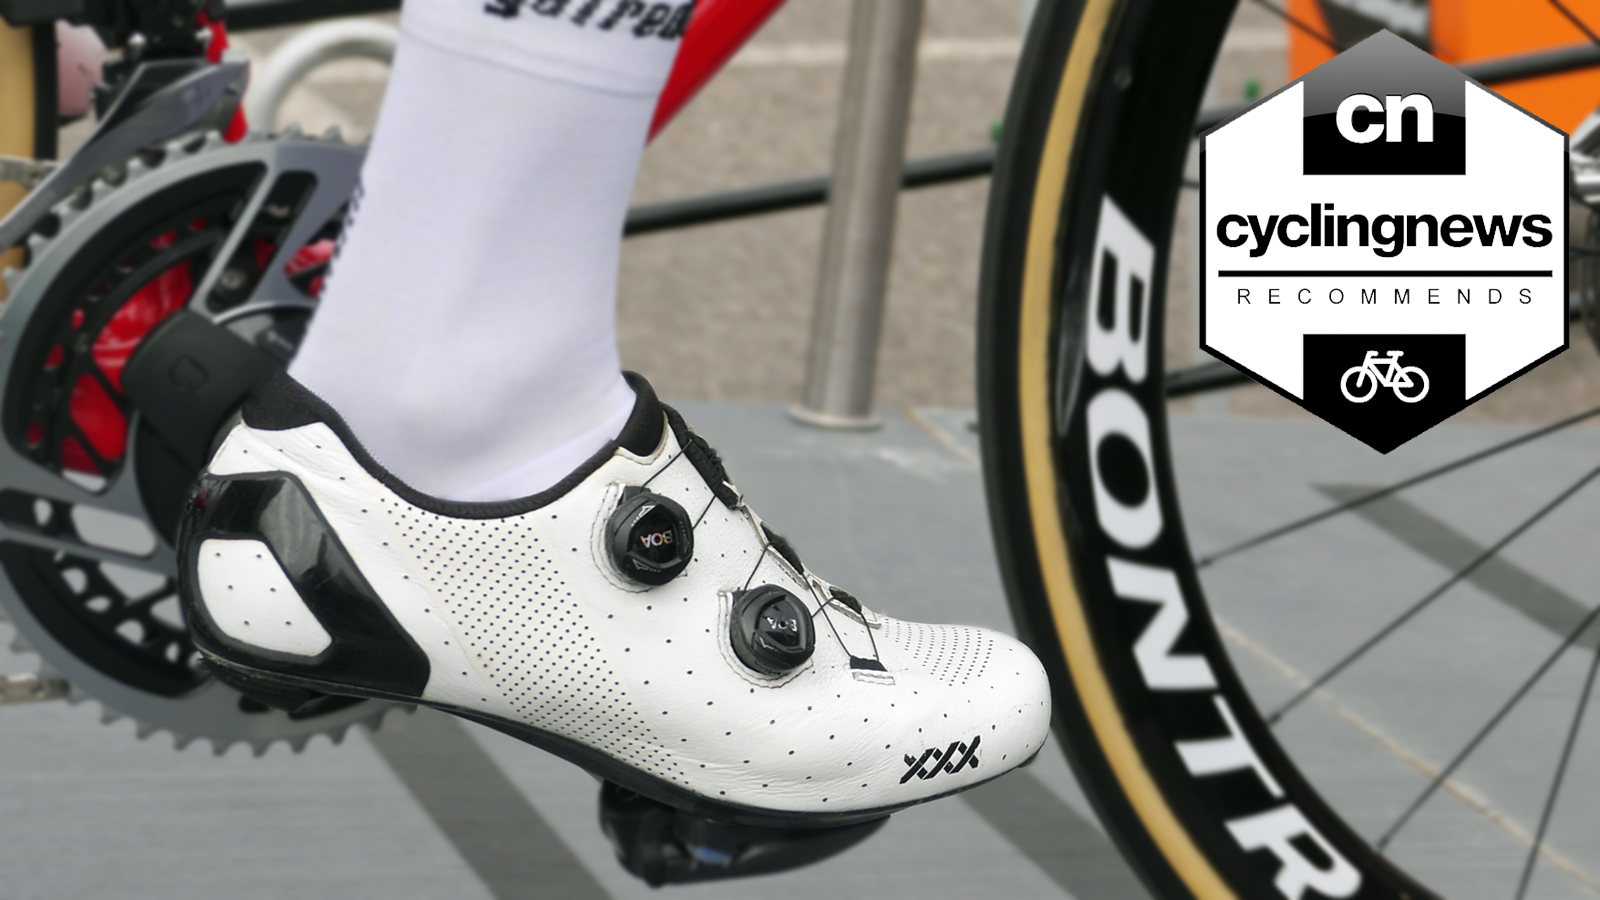 Best Cycling Shoes Stylish Stiff And Comfortable Shoes For Cyclists Cyclingnews She's written for publications like more magazine, cosmopolitan, everydayhealth.com, and women's. best cycling shoes stylish stiff and